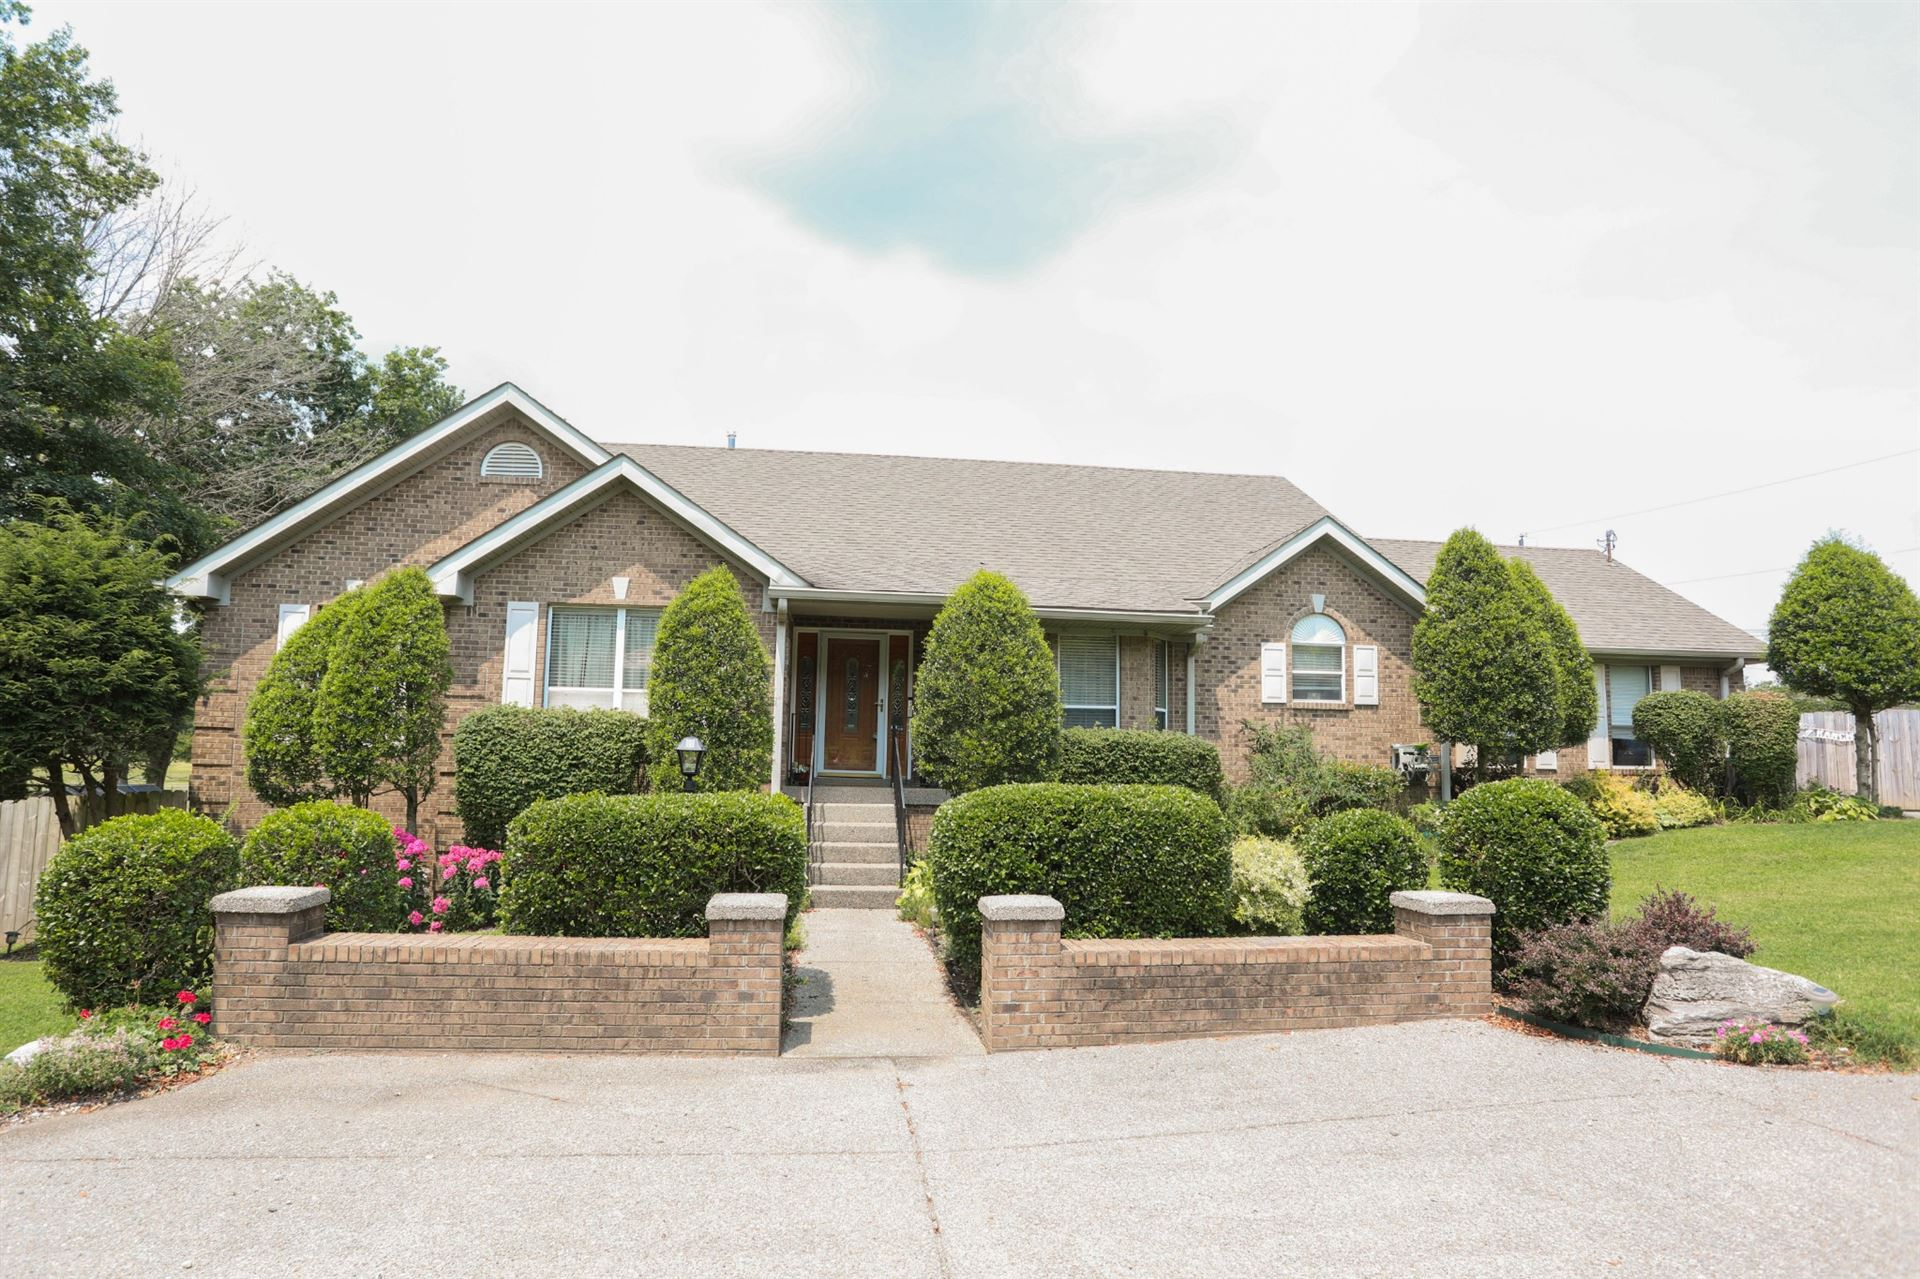 477 General Kershaw Dr, Old Hickory, TN 37138 - MLS#: 2269040